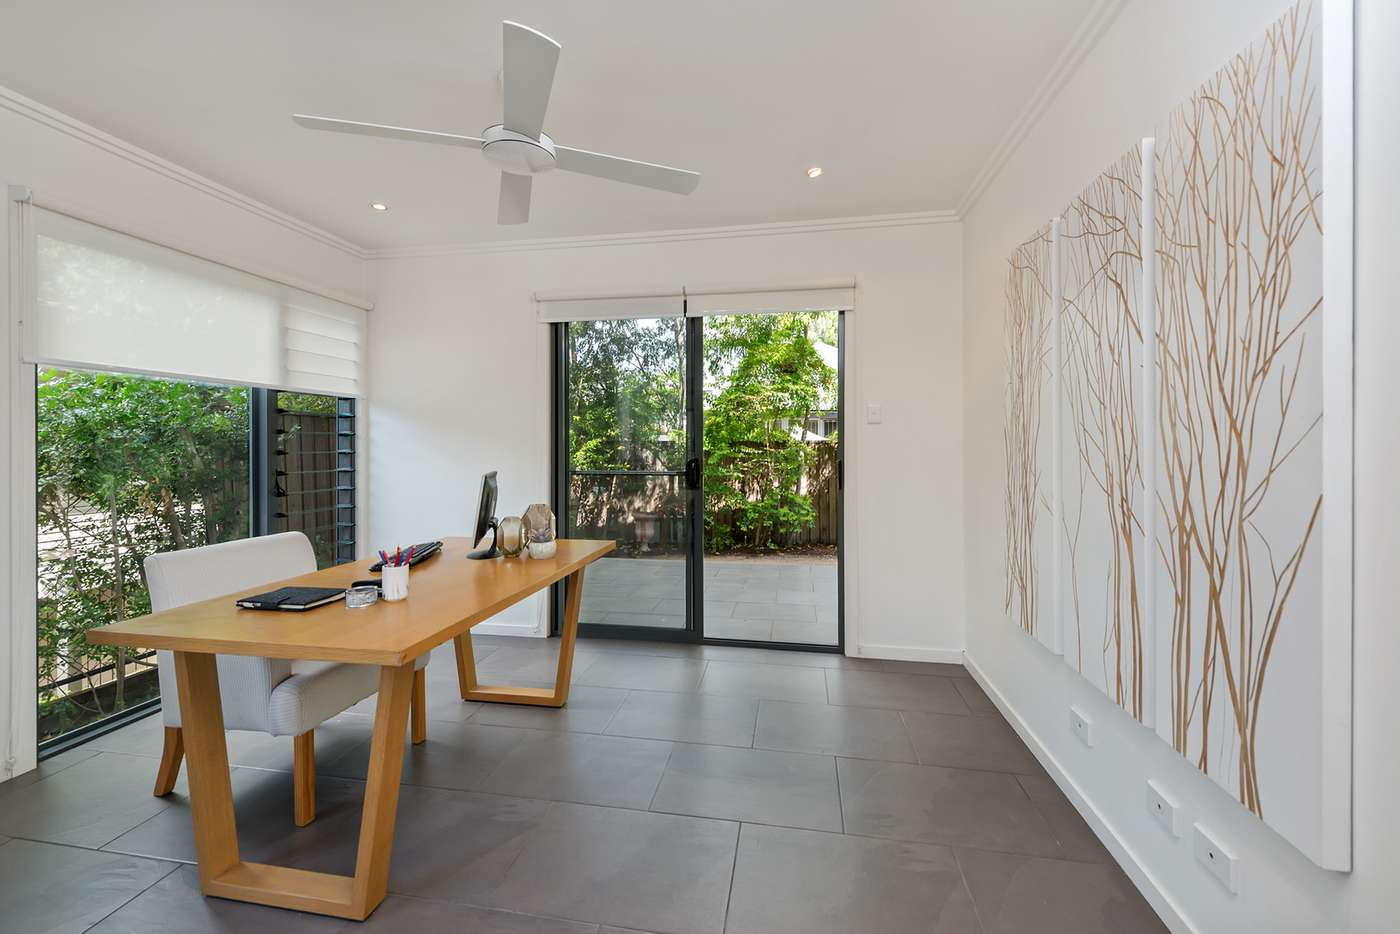 Sixth view of Homely house listing, 52 Farm Street, Newmarket QLD 4051